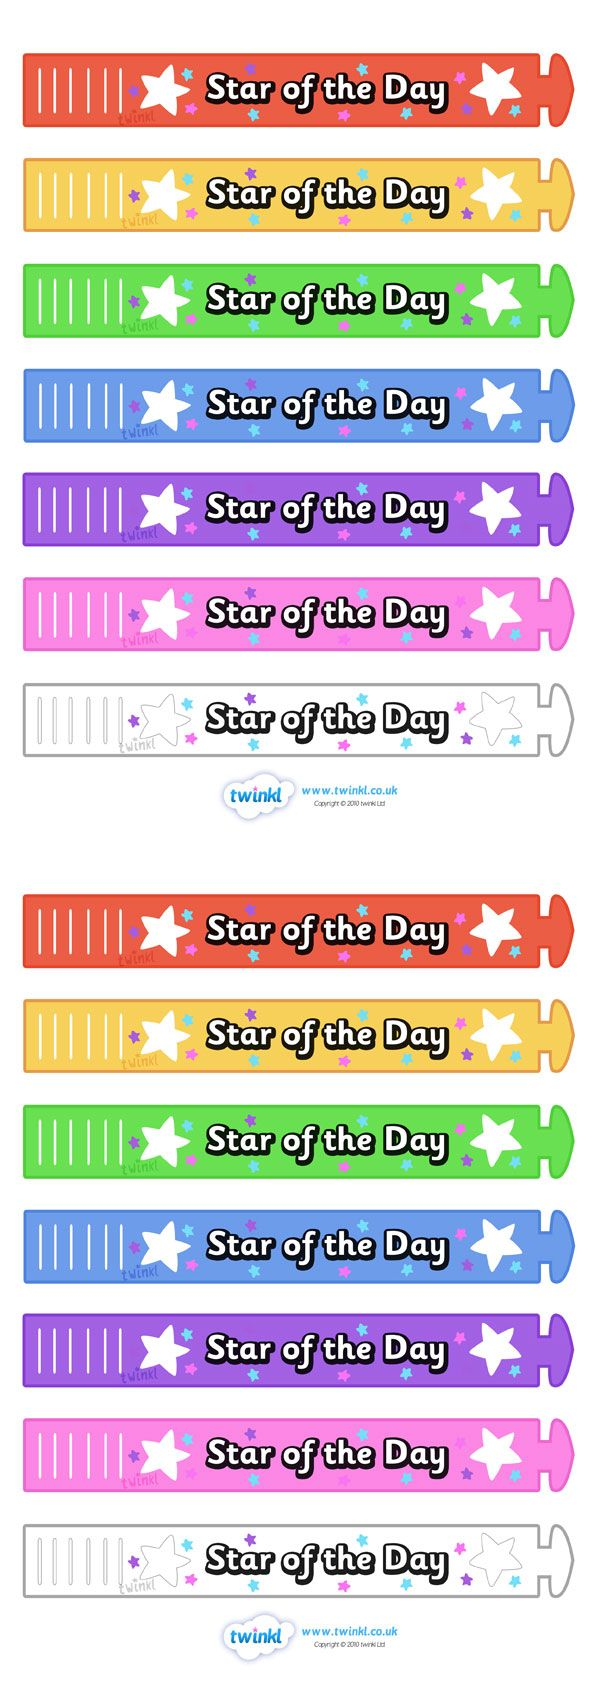 twinkl resources wristband awards star of the day thousands of printable primary